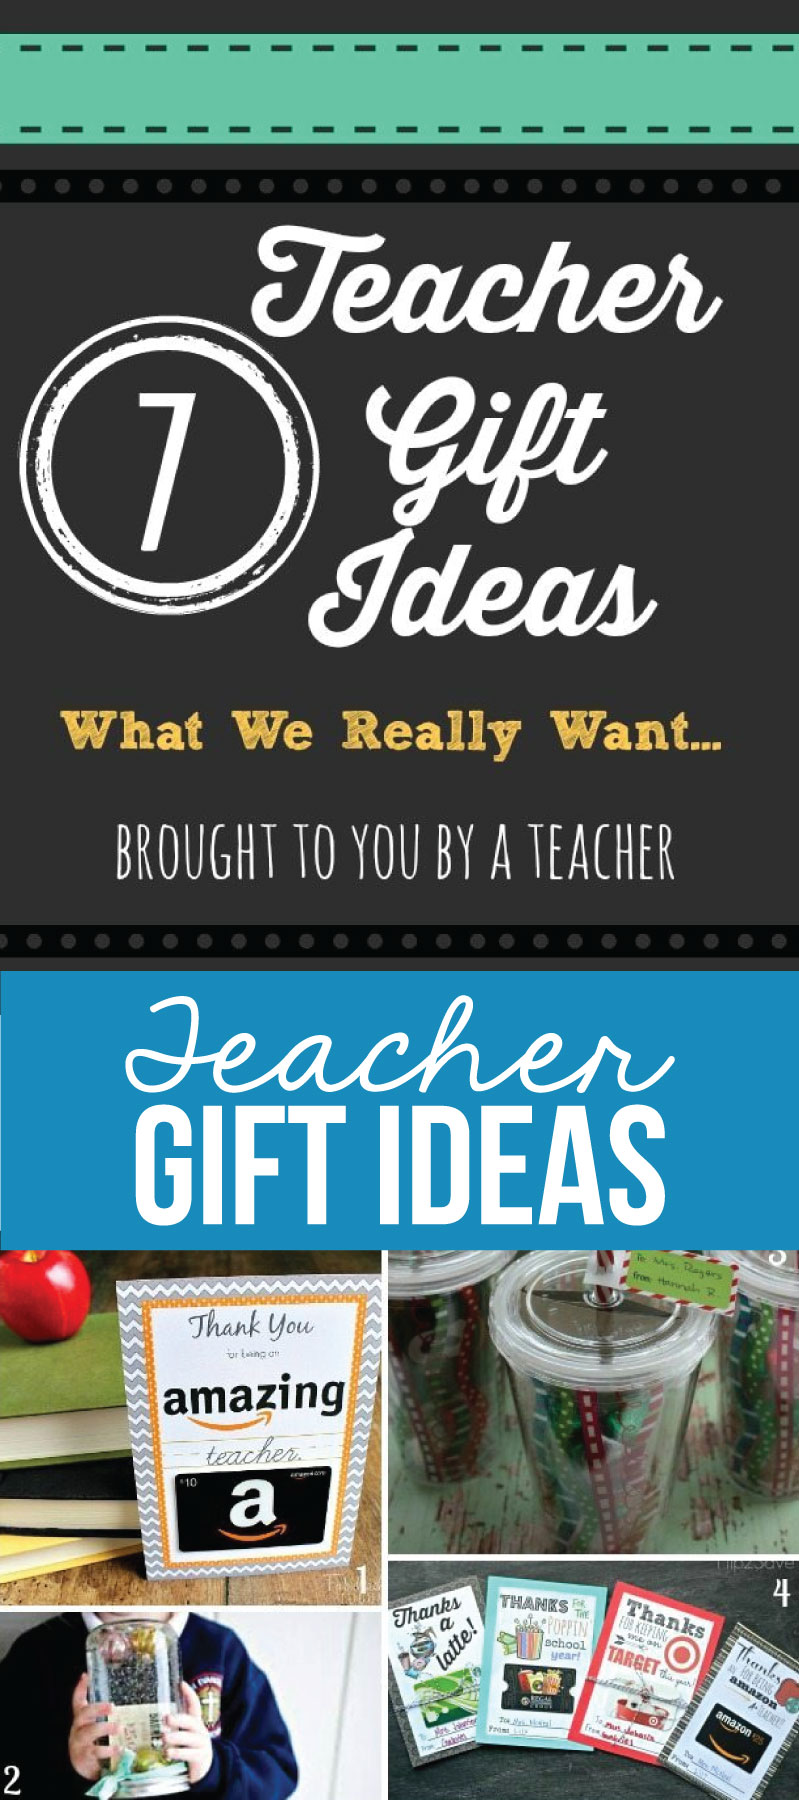 Childs Teacher Will Be Appreciated Any Gift That Is Heartfelt And Thoughtful Make Him Her Happy However If You Wan To EXTRA